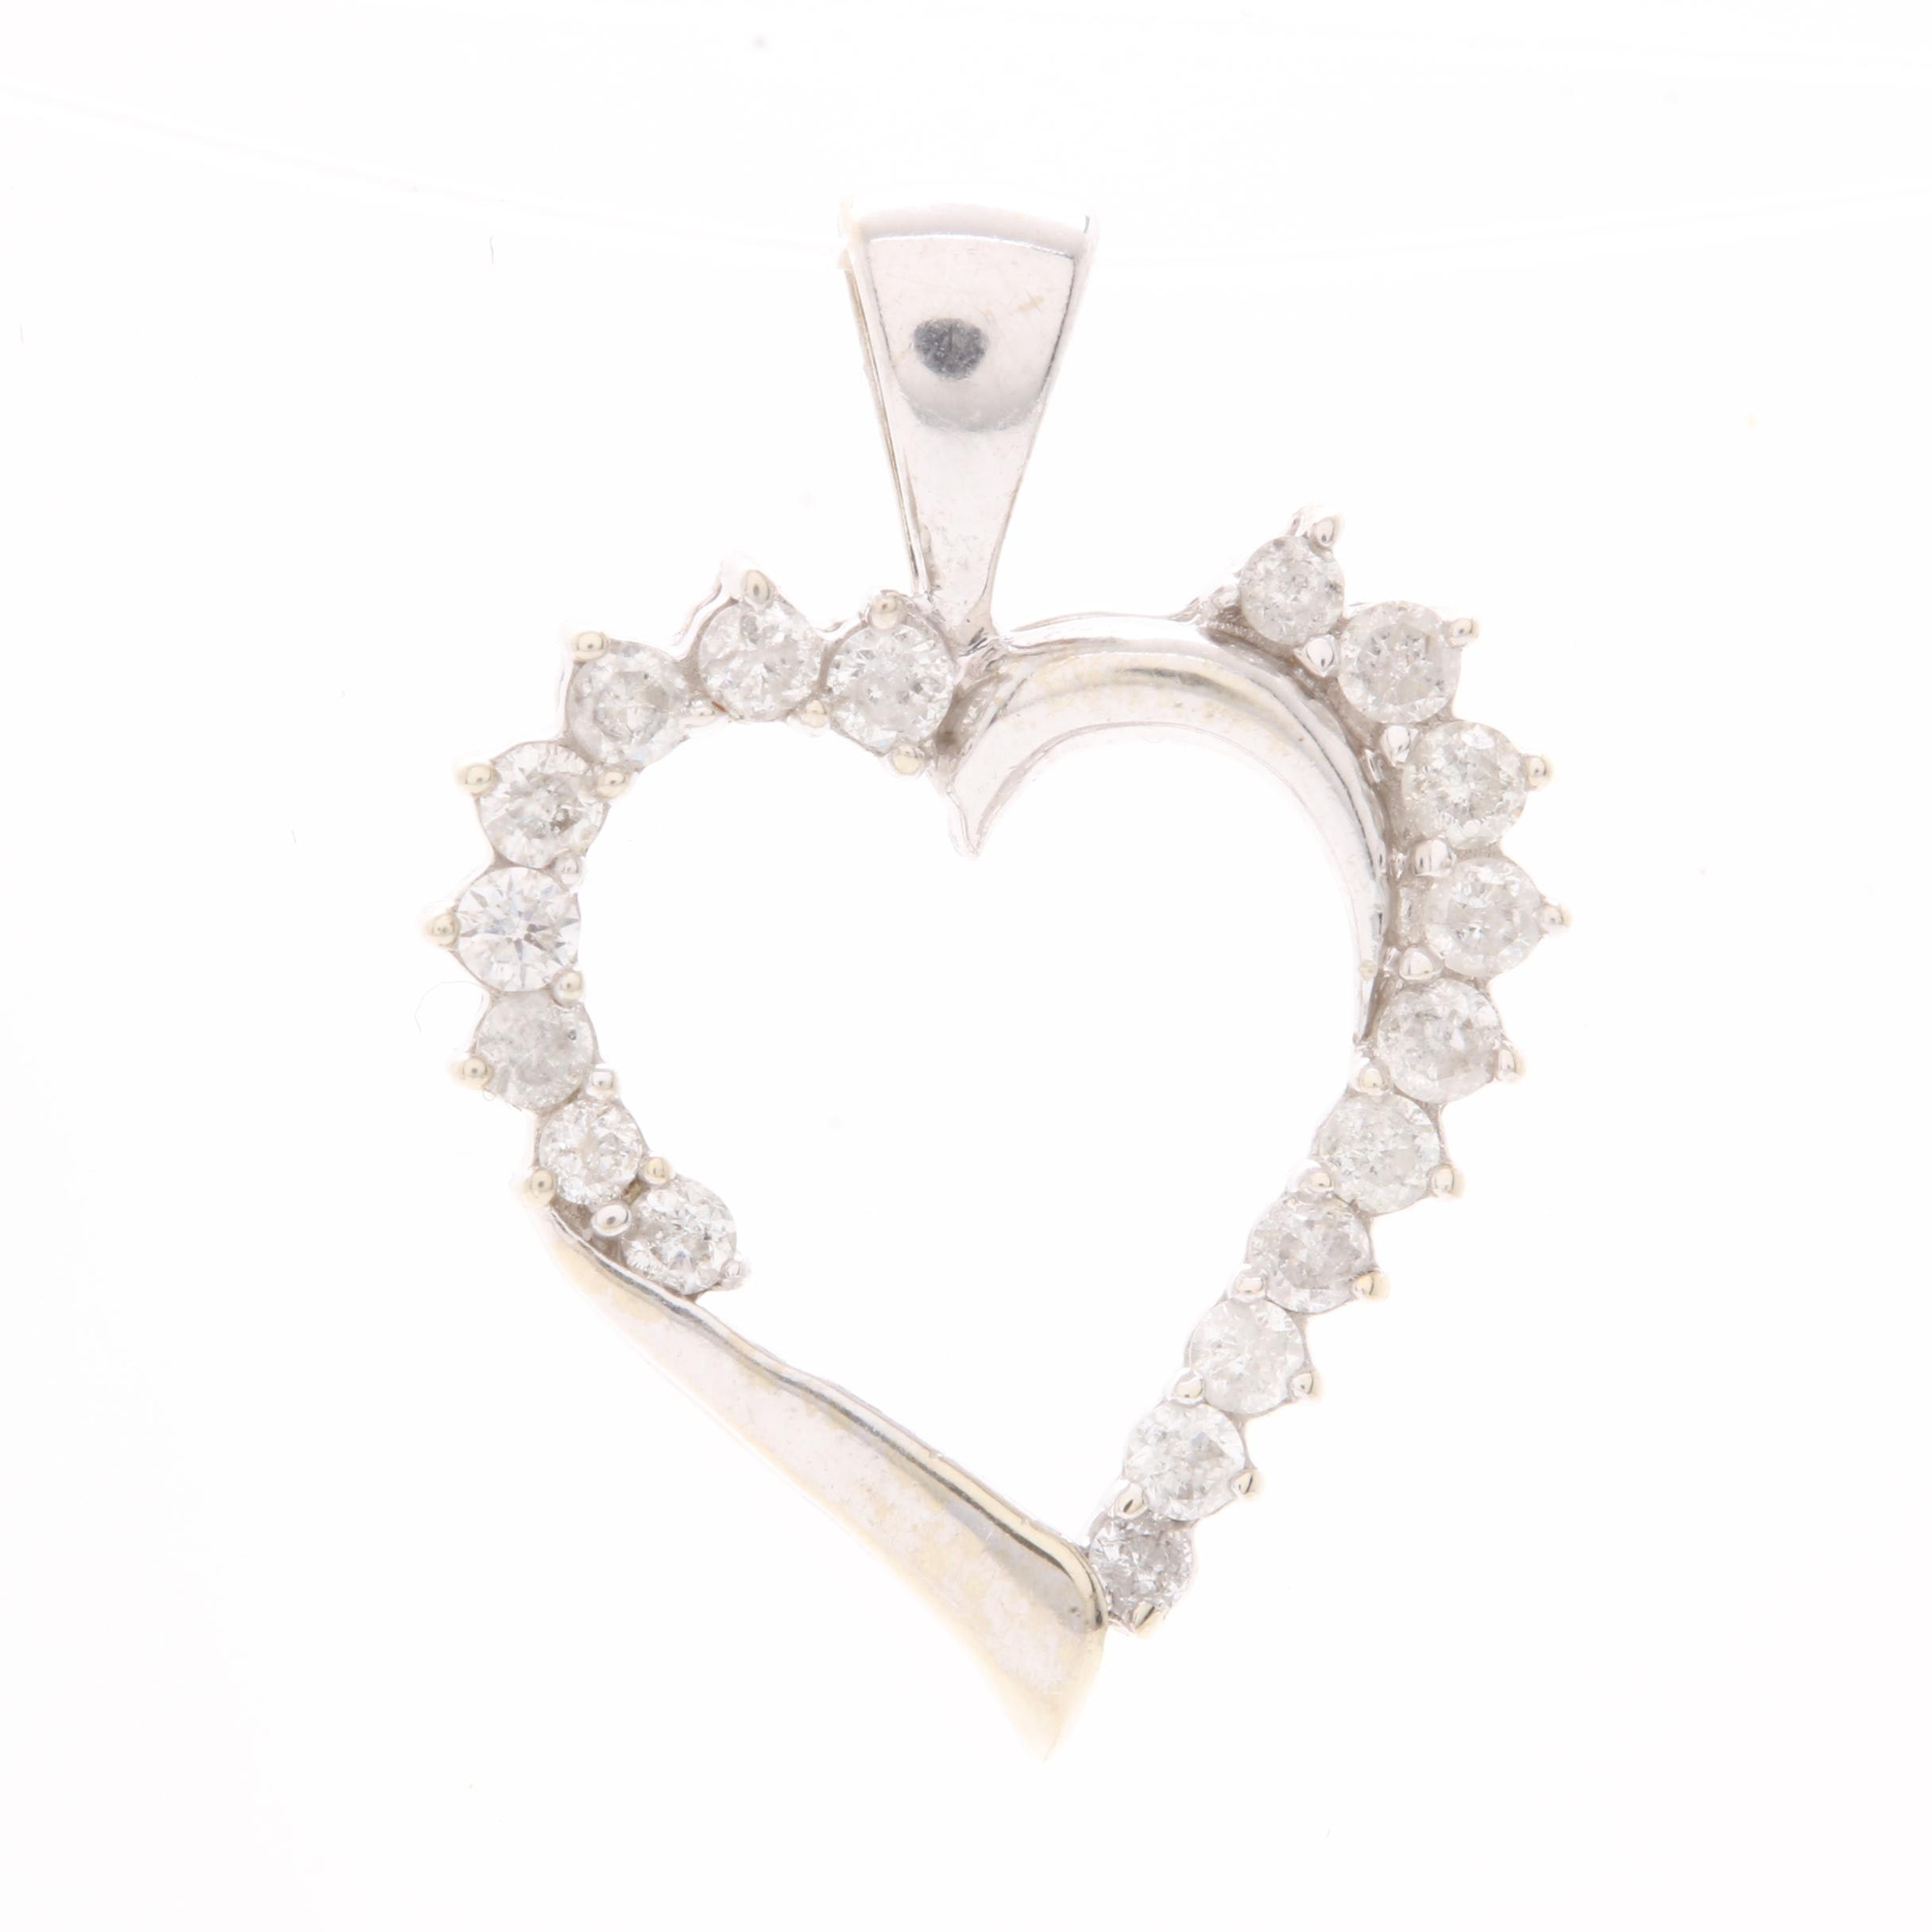 10K White Gold Diamond Heart Pendant